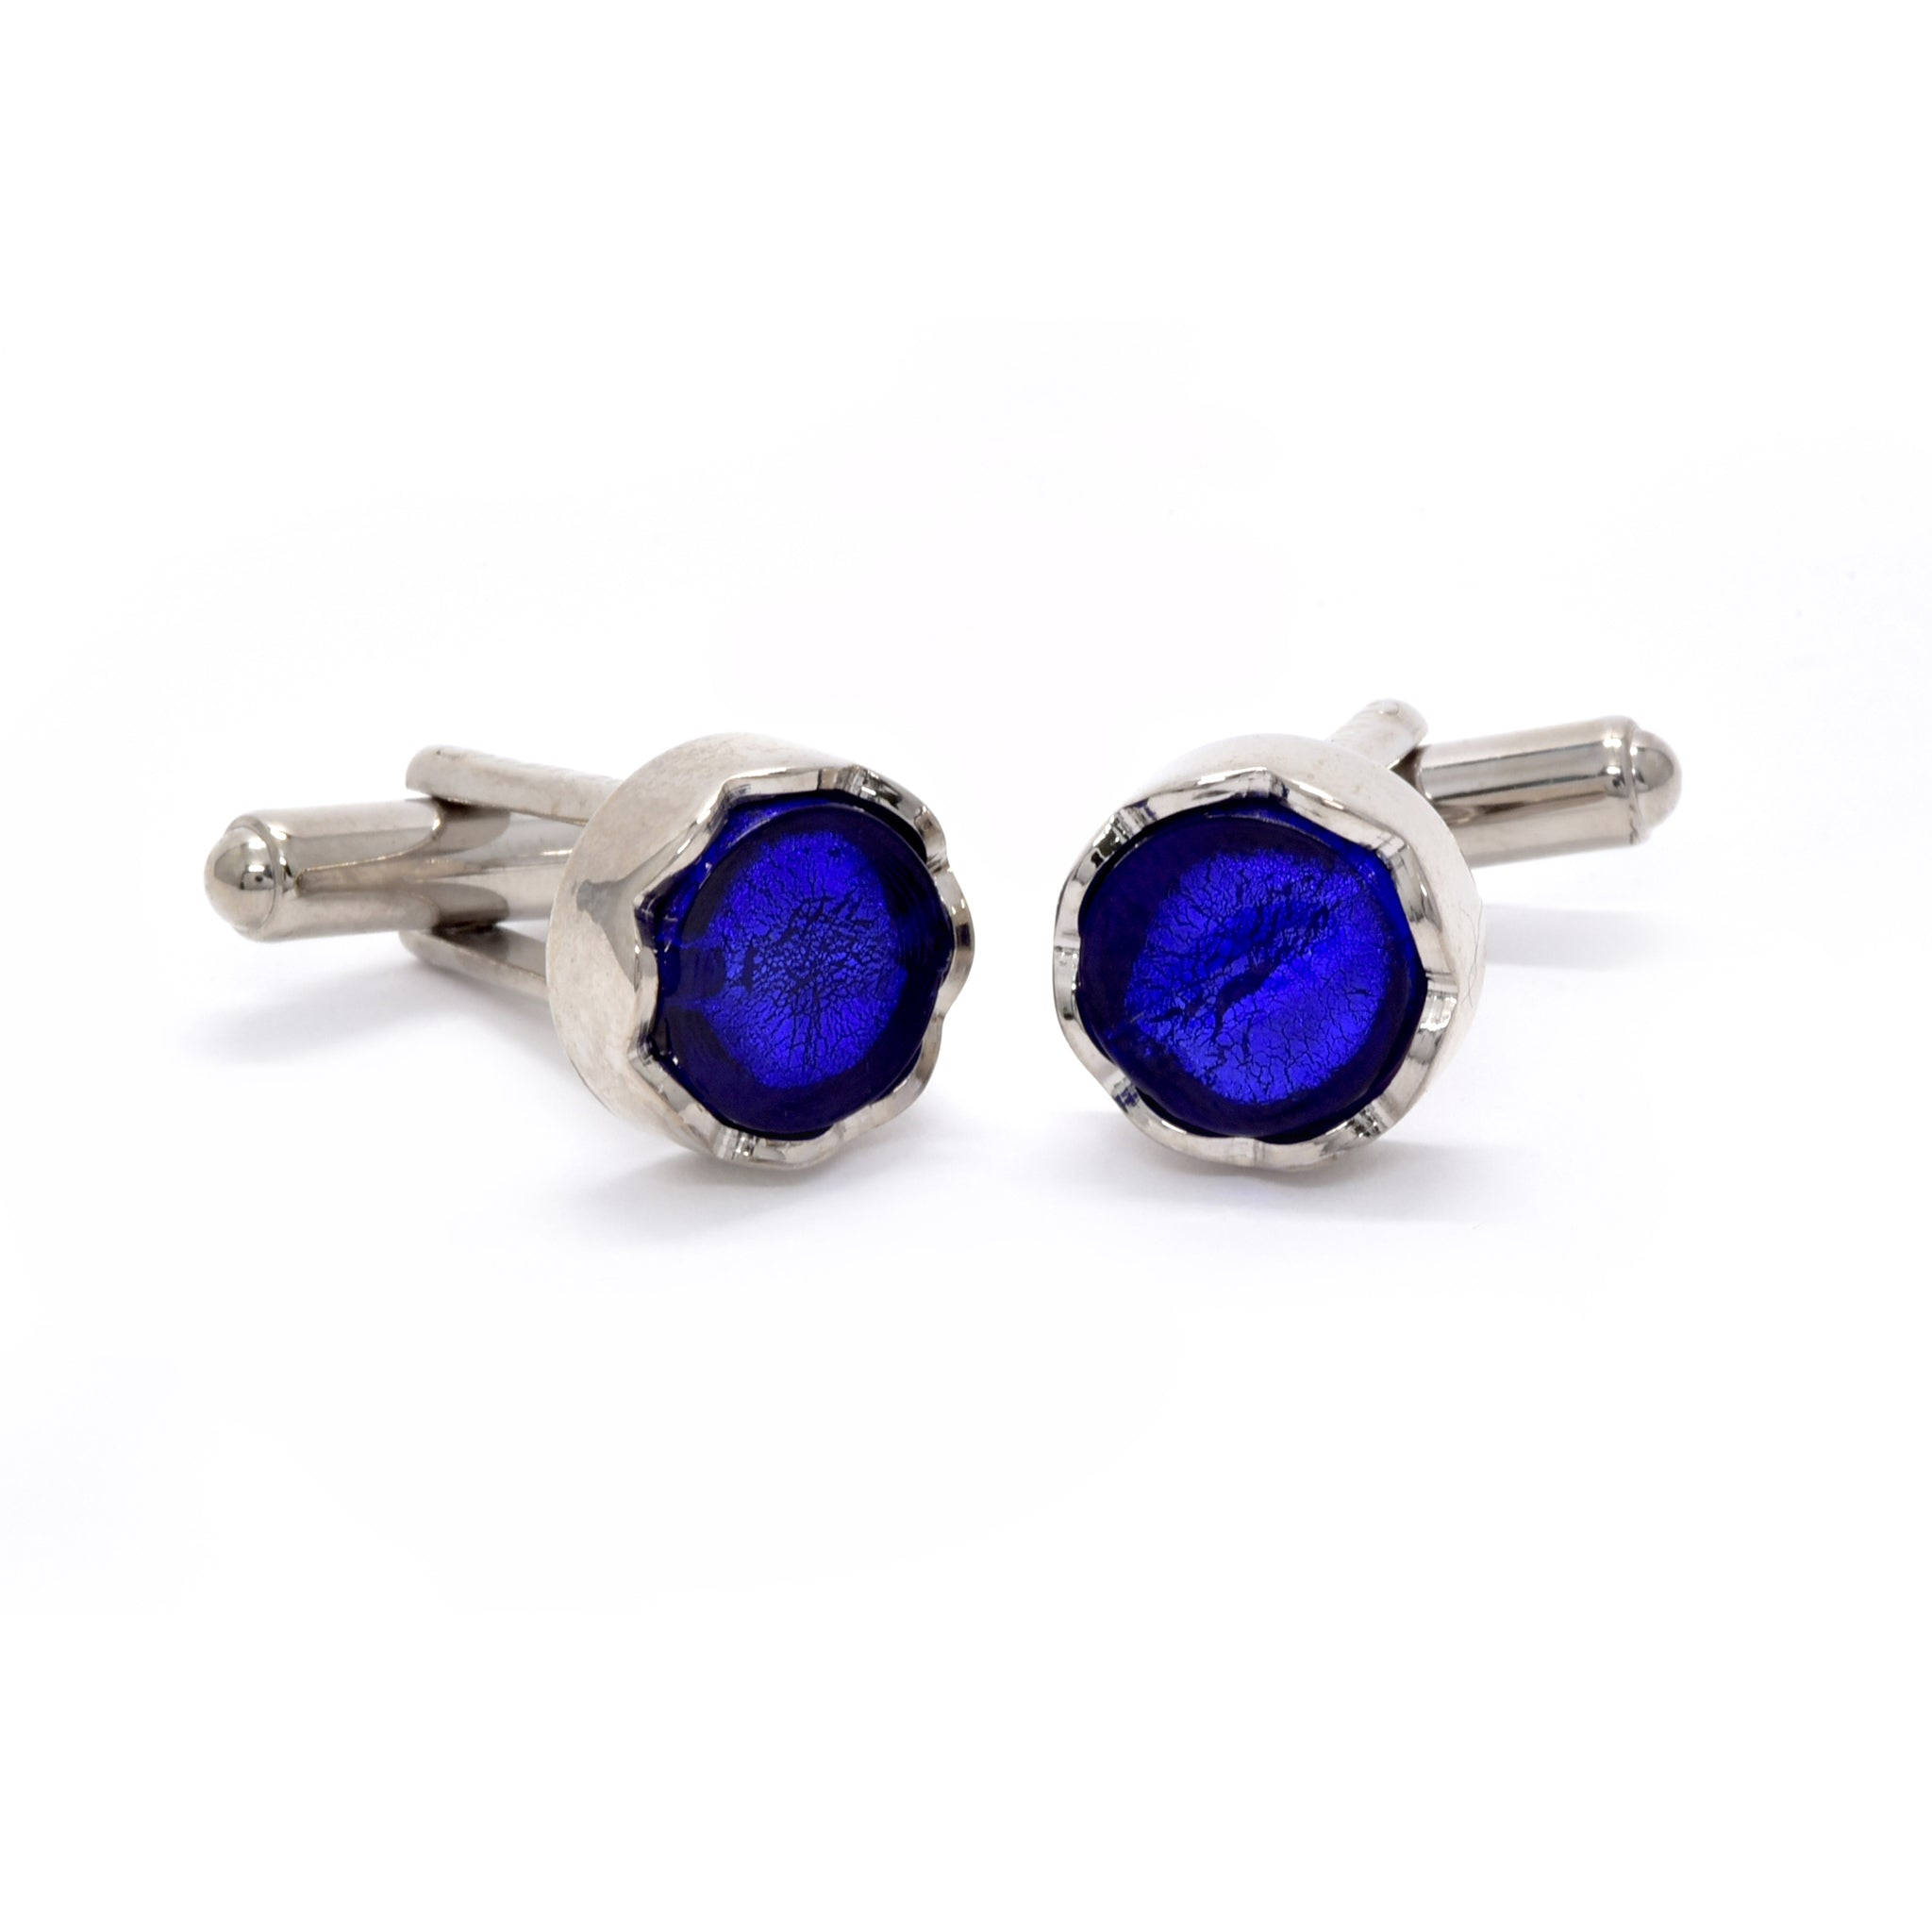 Sebastian Cufflinks in Blue - Giorgio Mandelli® Official Site | GIORGIO MANDELLI Made in Italy